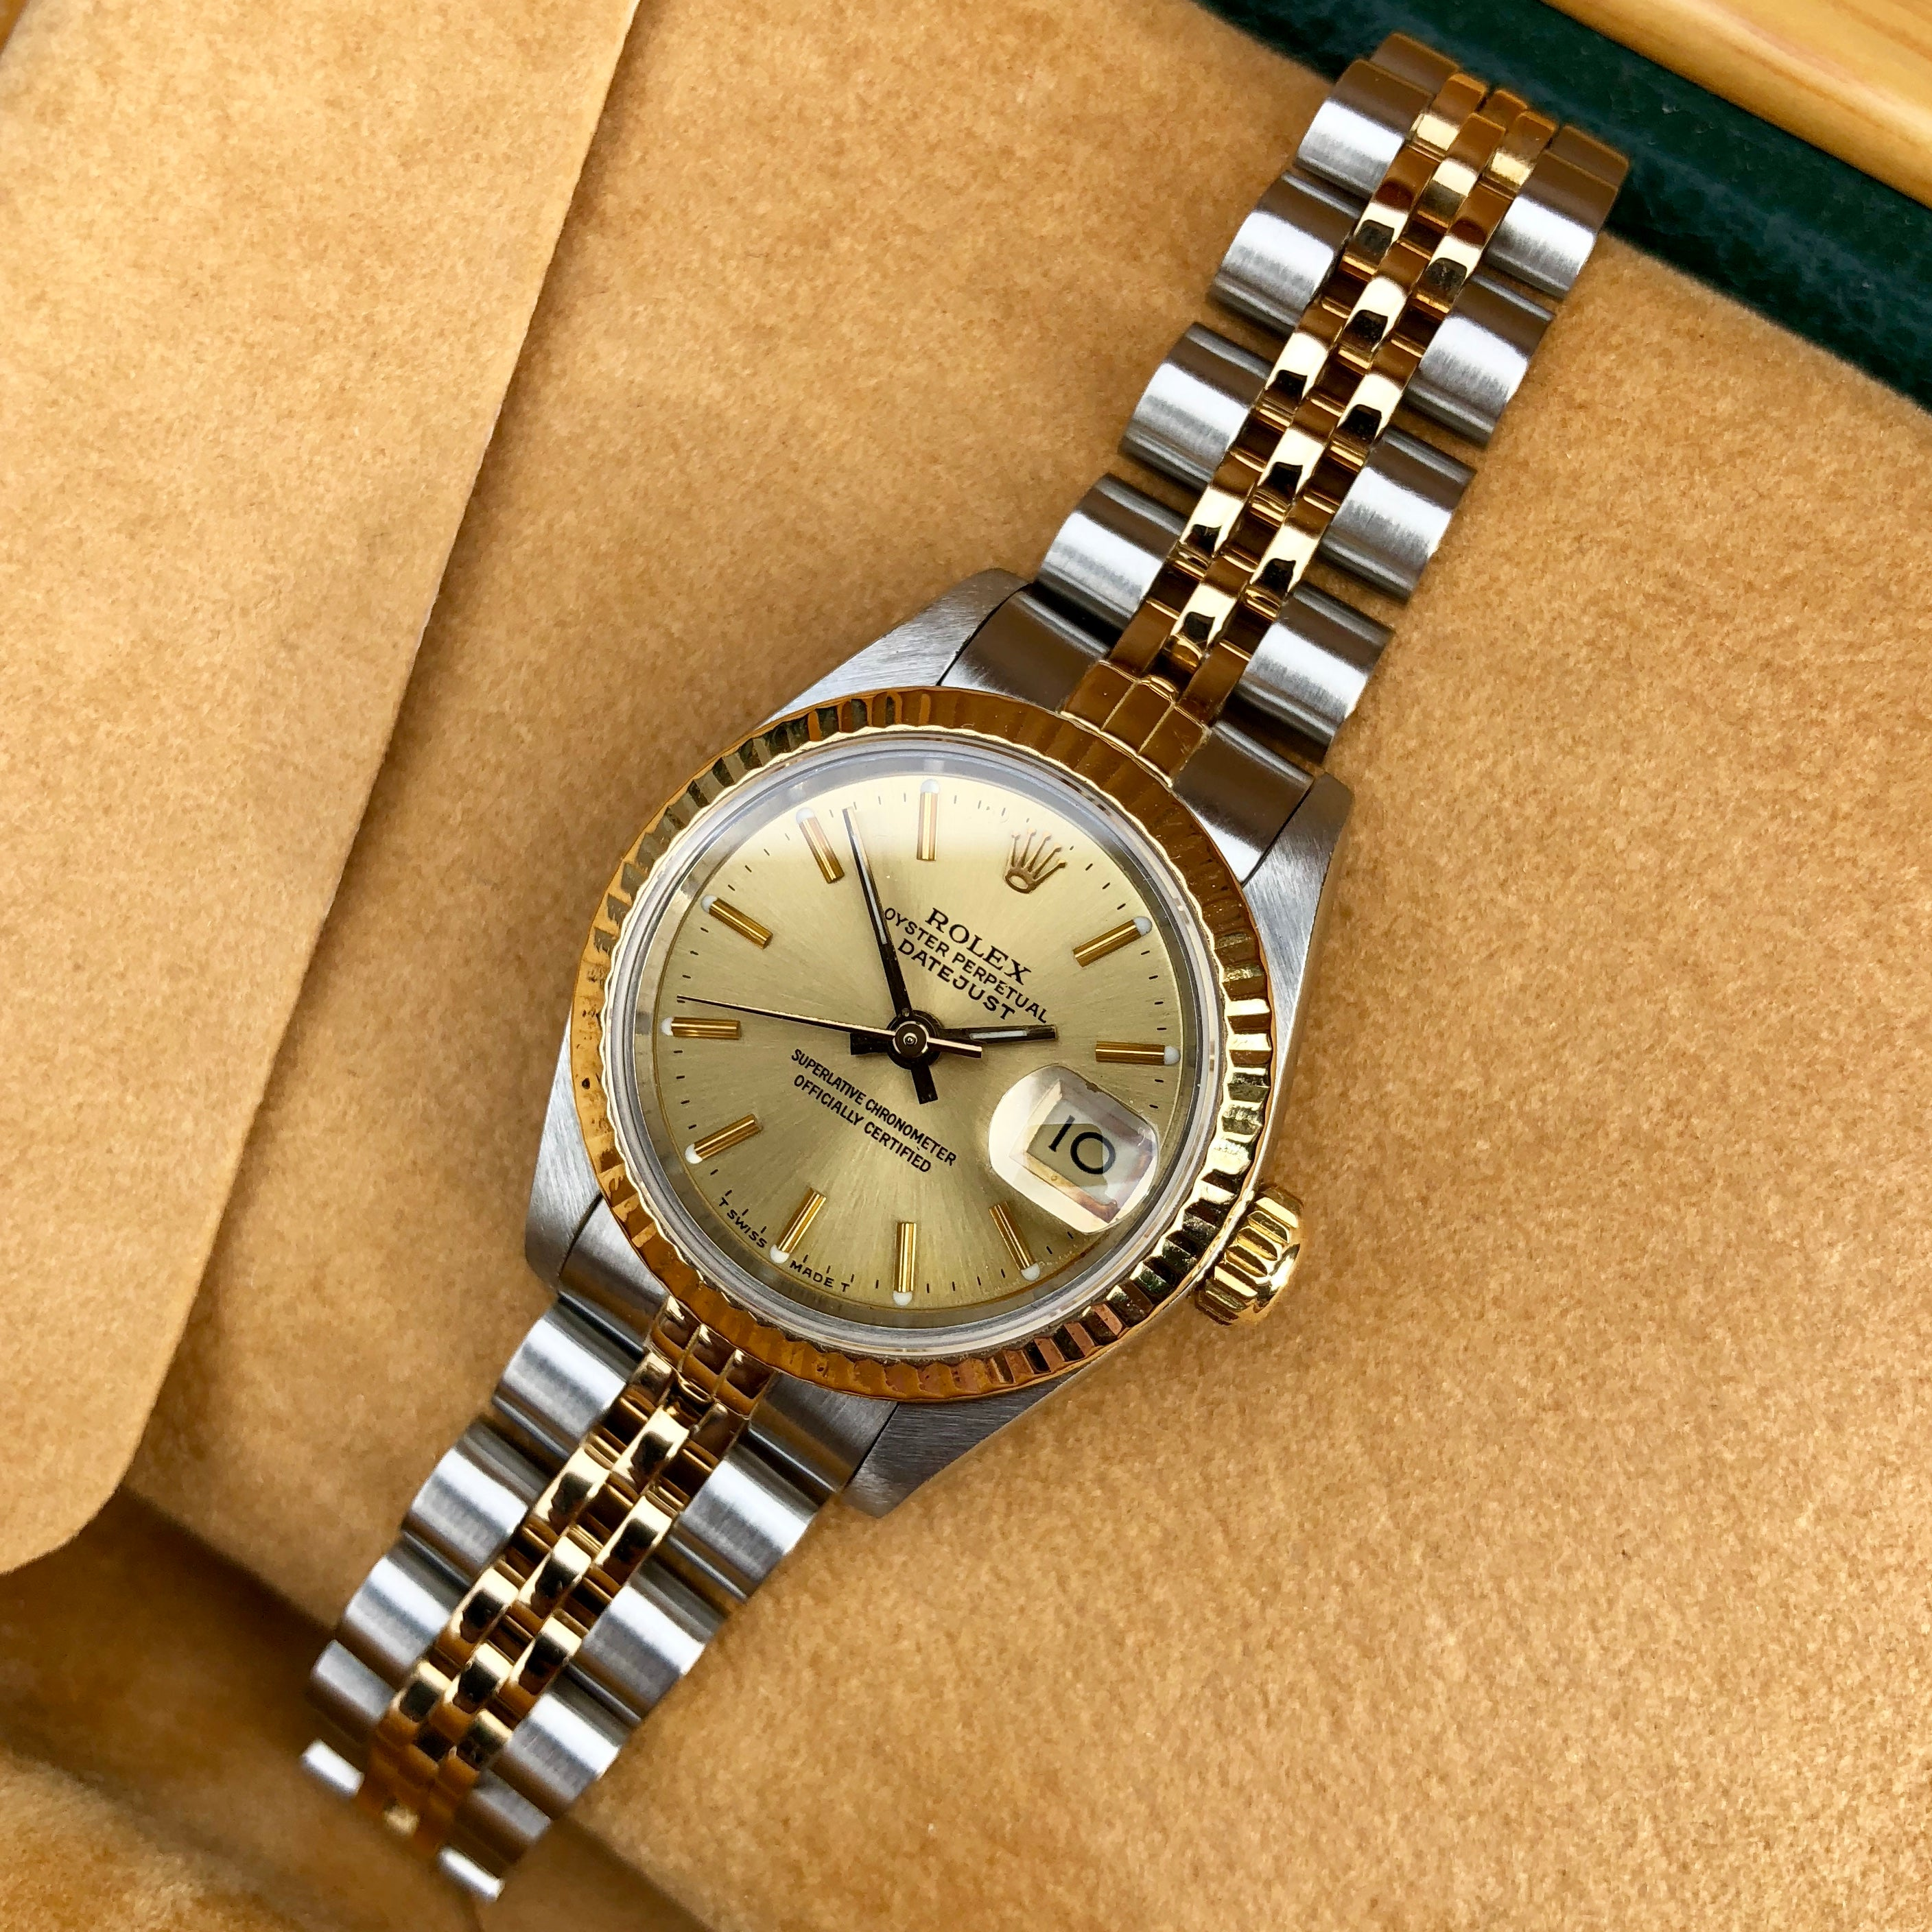 c4d667ab9ed ... Rolex Datejust 69173 Ladies Two Tone Champagne Stick Dial Steel 18K  Gold Jubilee Wristwatch